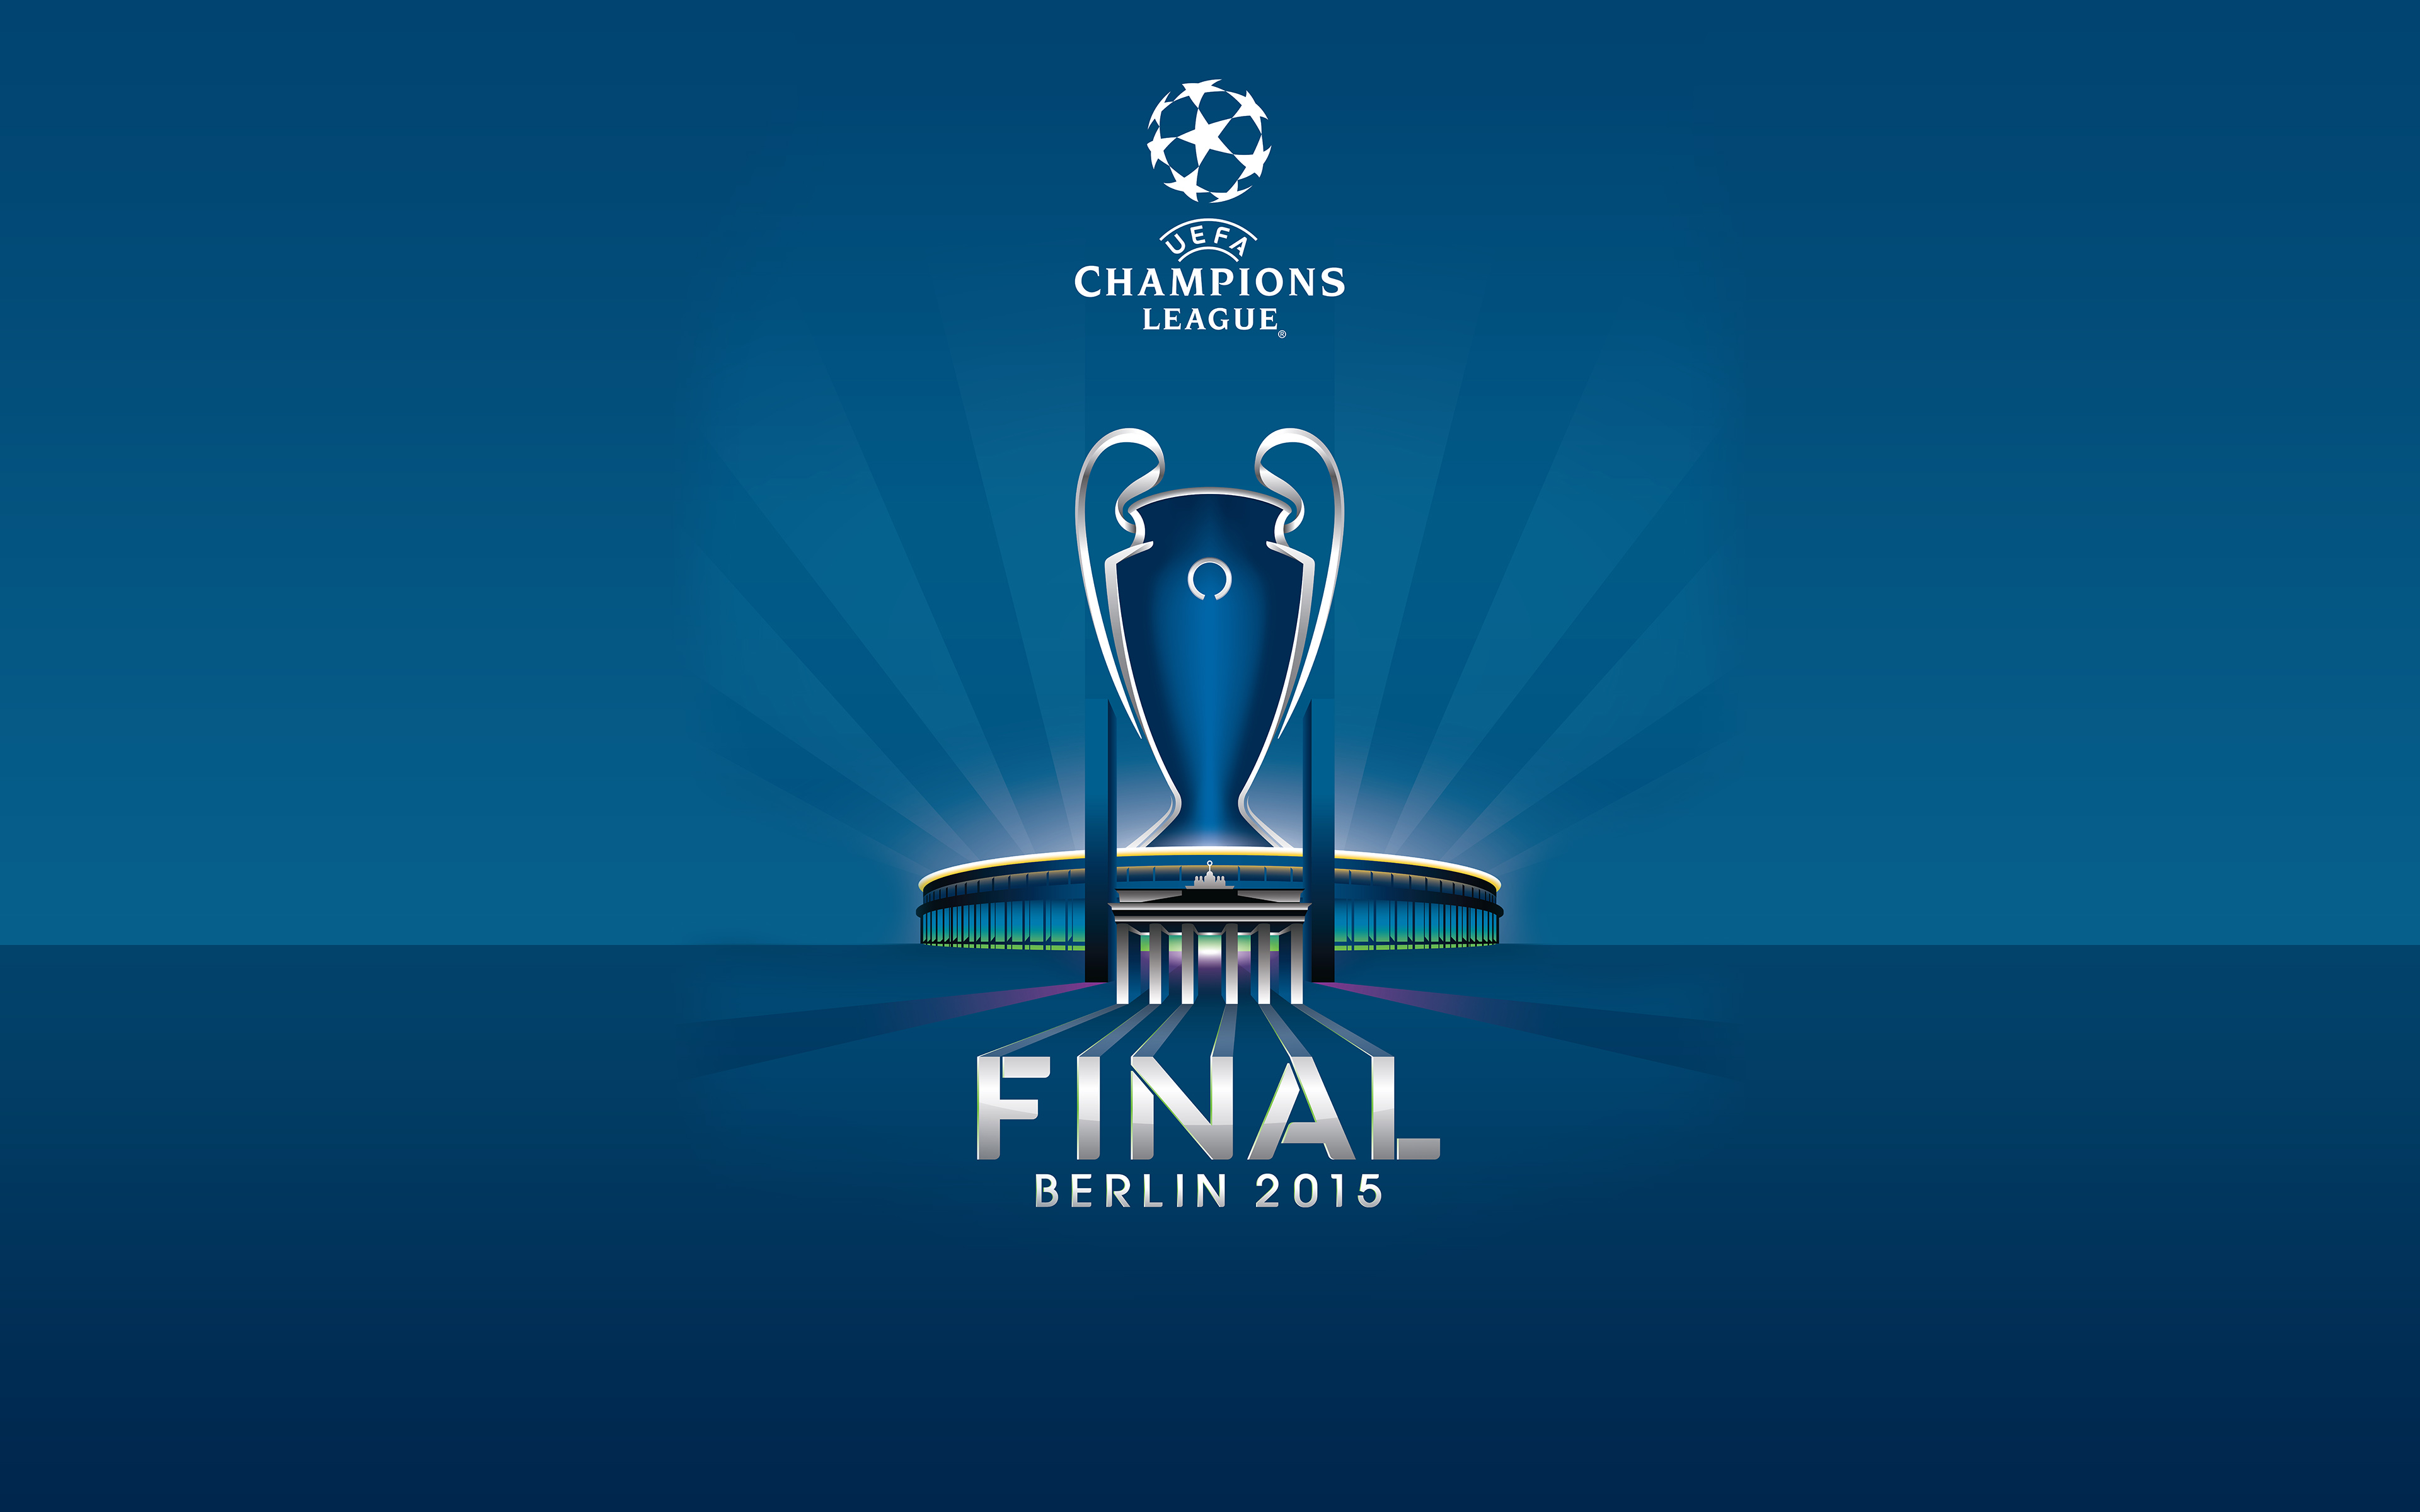 UEFA Champions League Wallpapers   HD Wallpapers 3840x2400